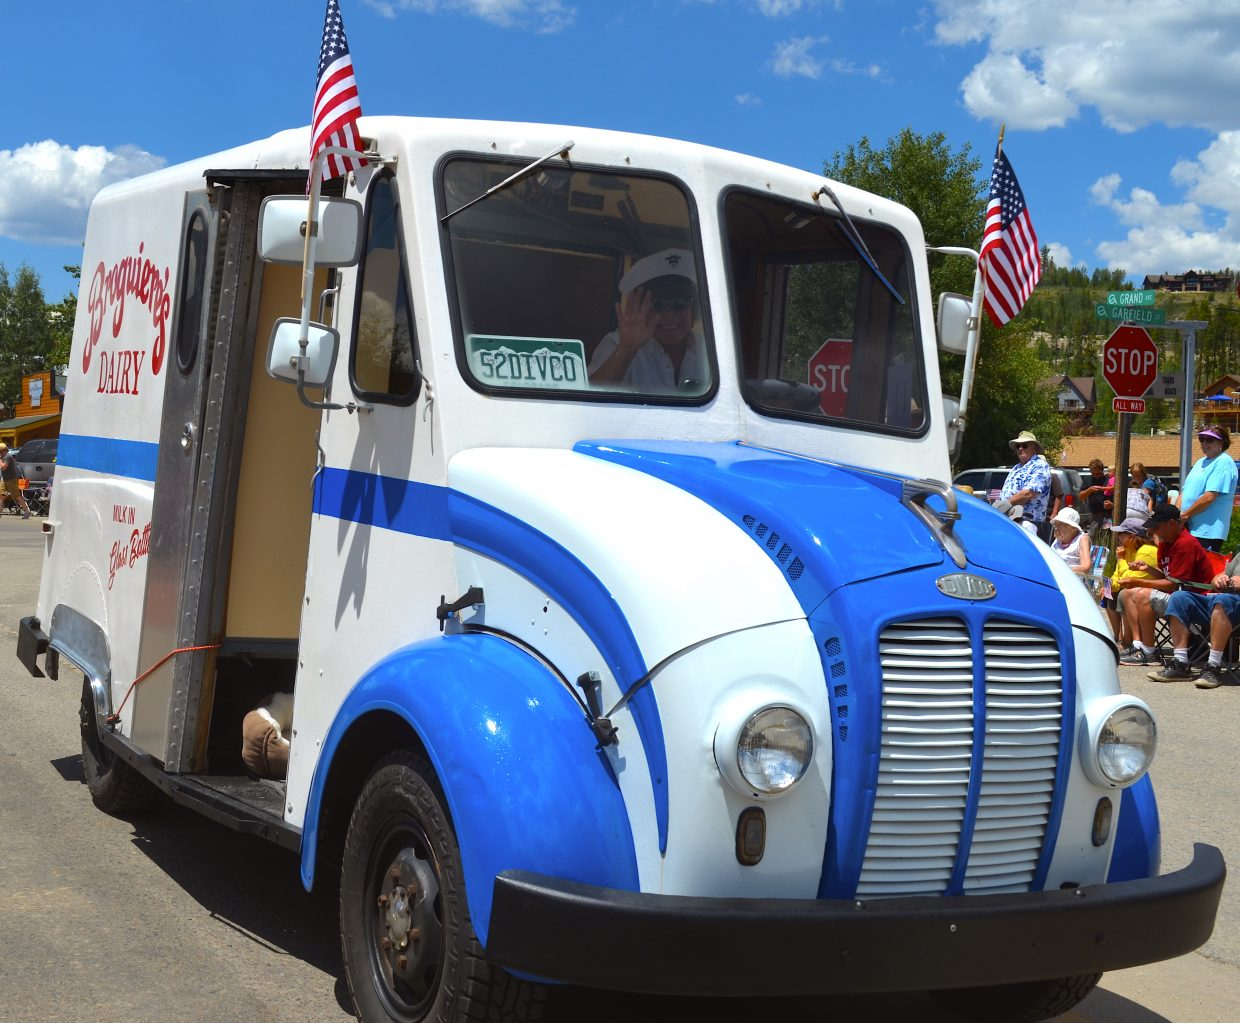 The Buffalo Days Parade featured several vintage automobiles including this restored milk truck.